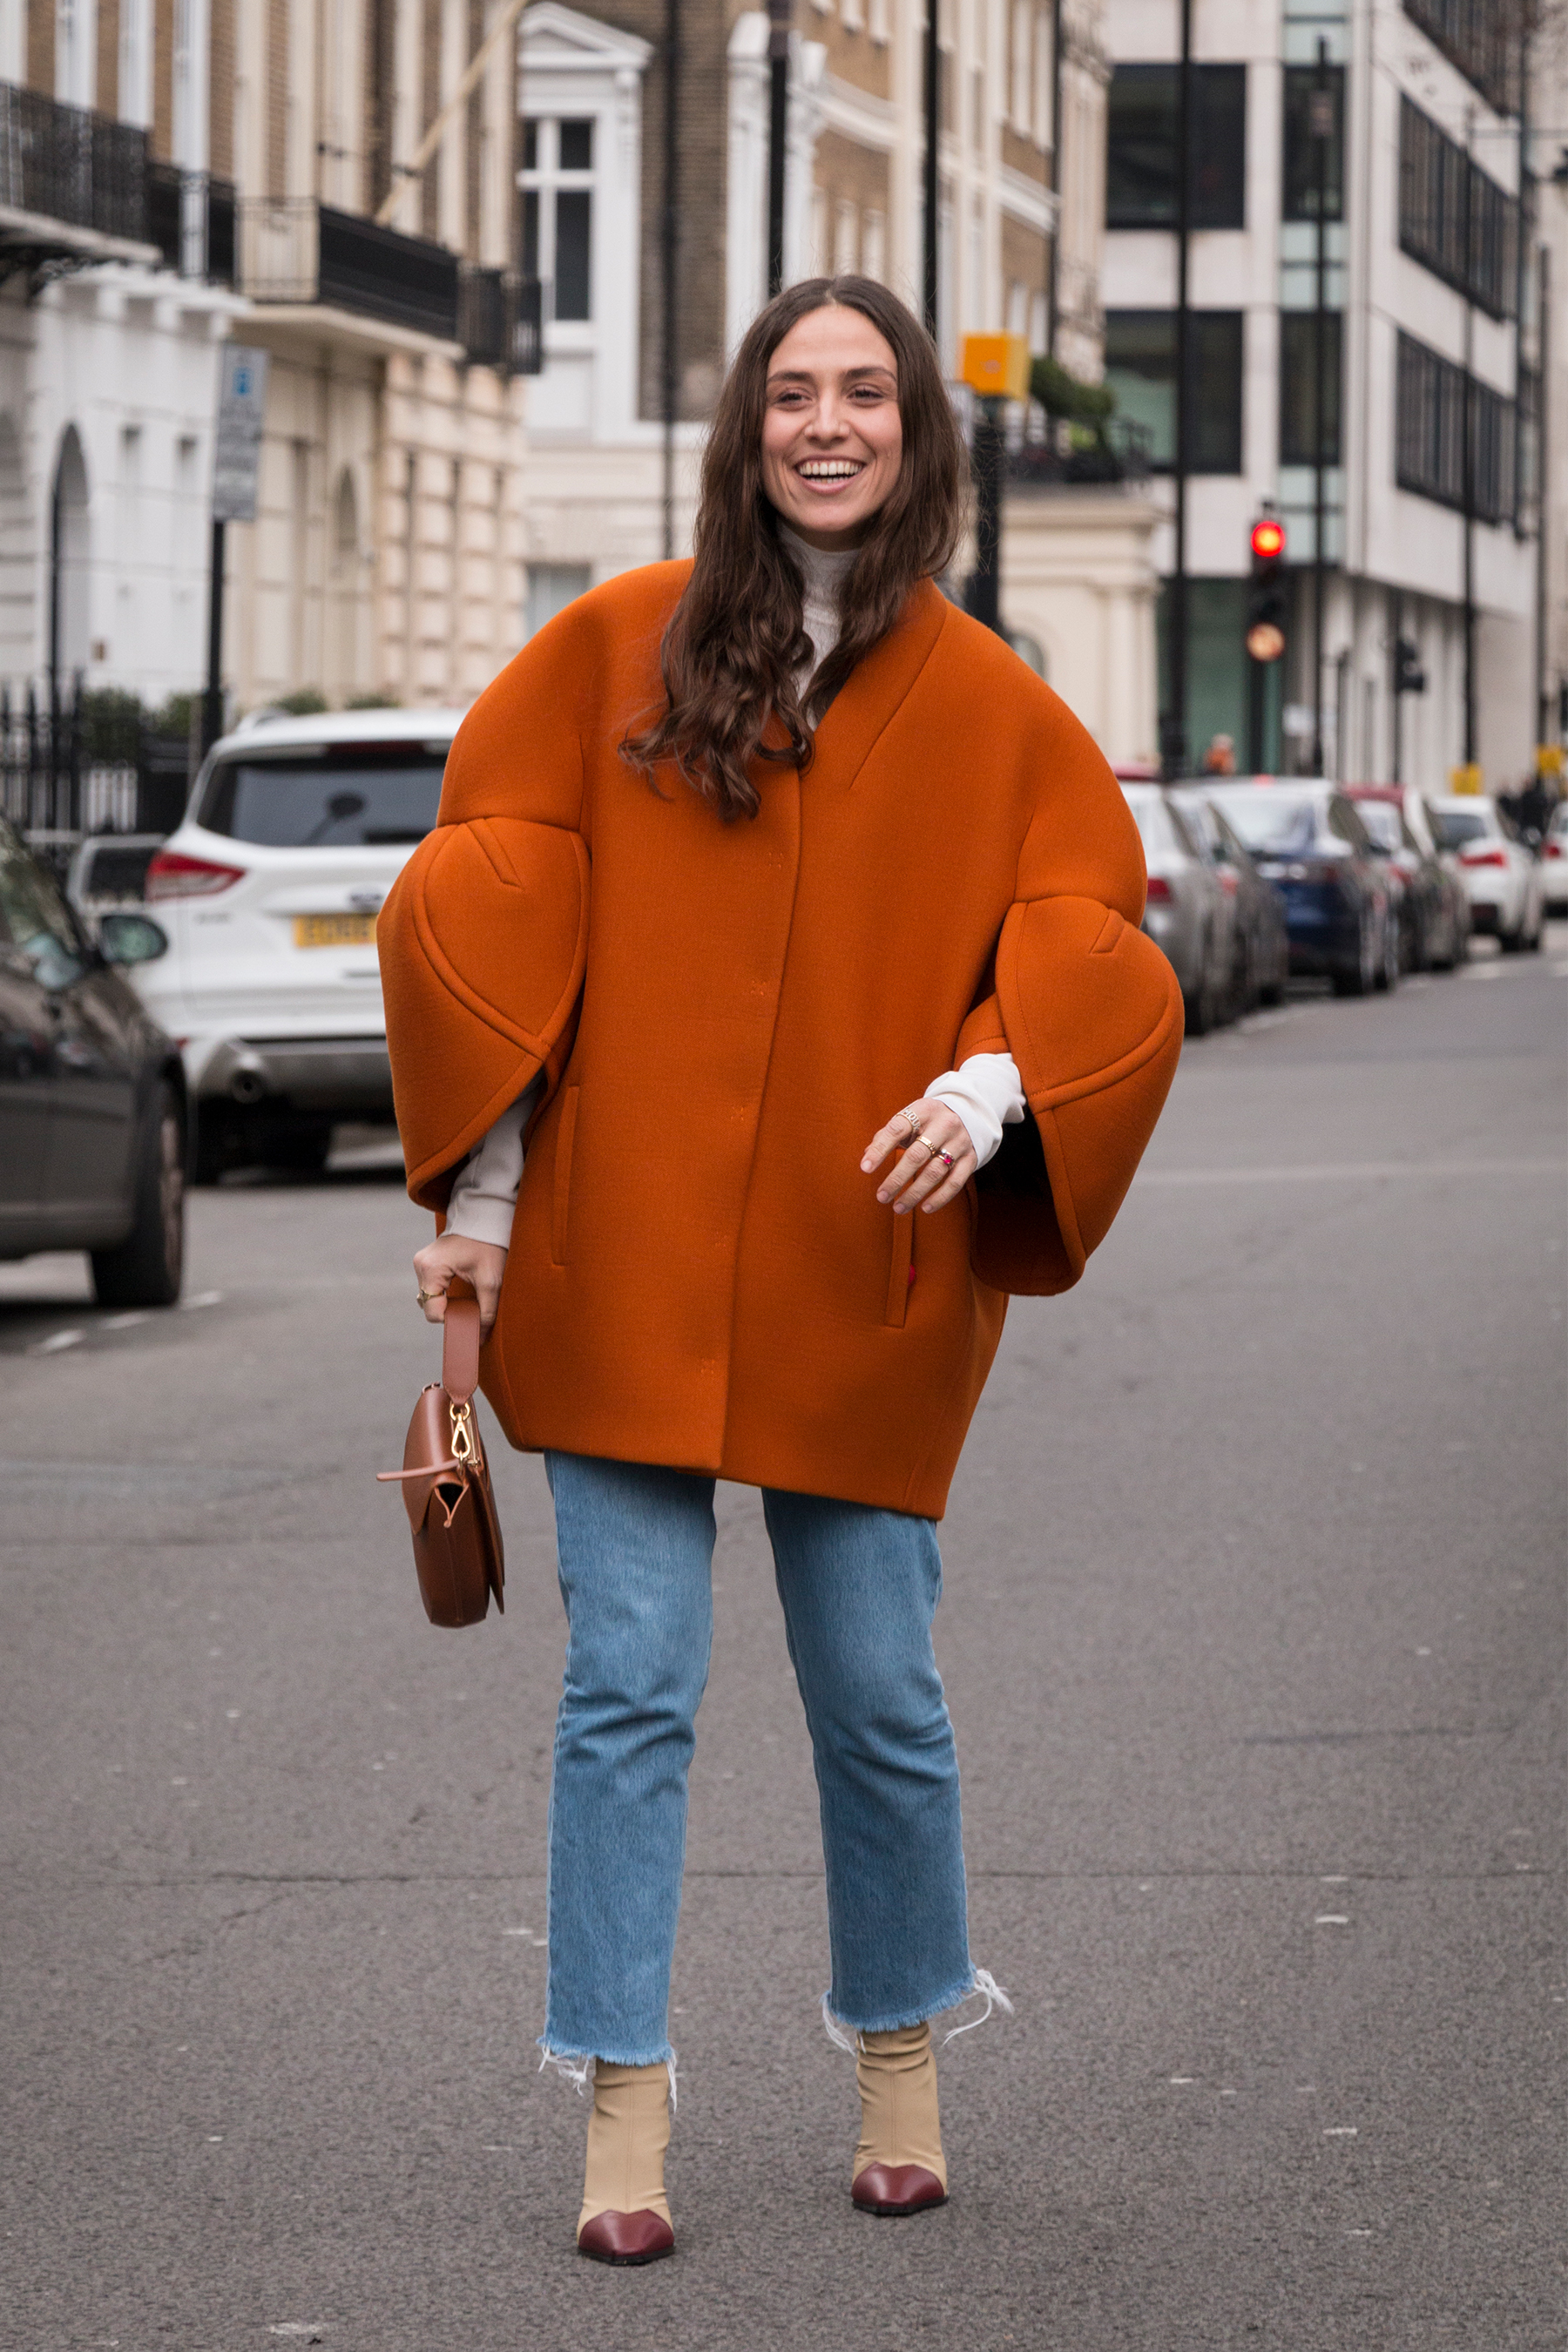 London Fashion Week Street Style Fall 2018 by Poli Alexeeva